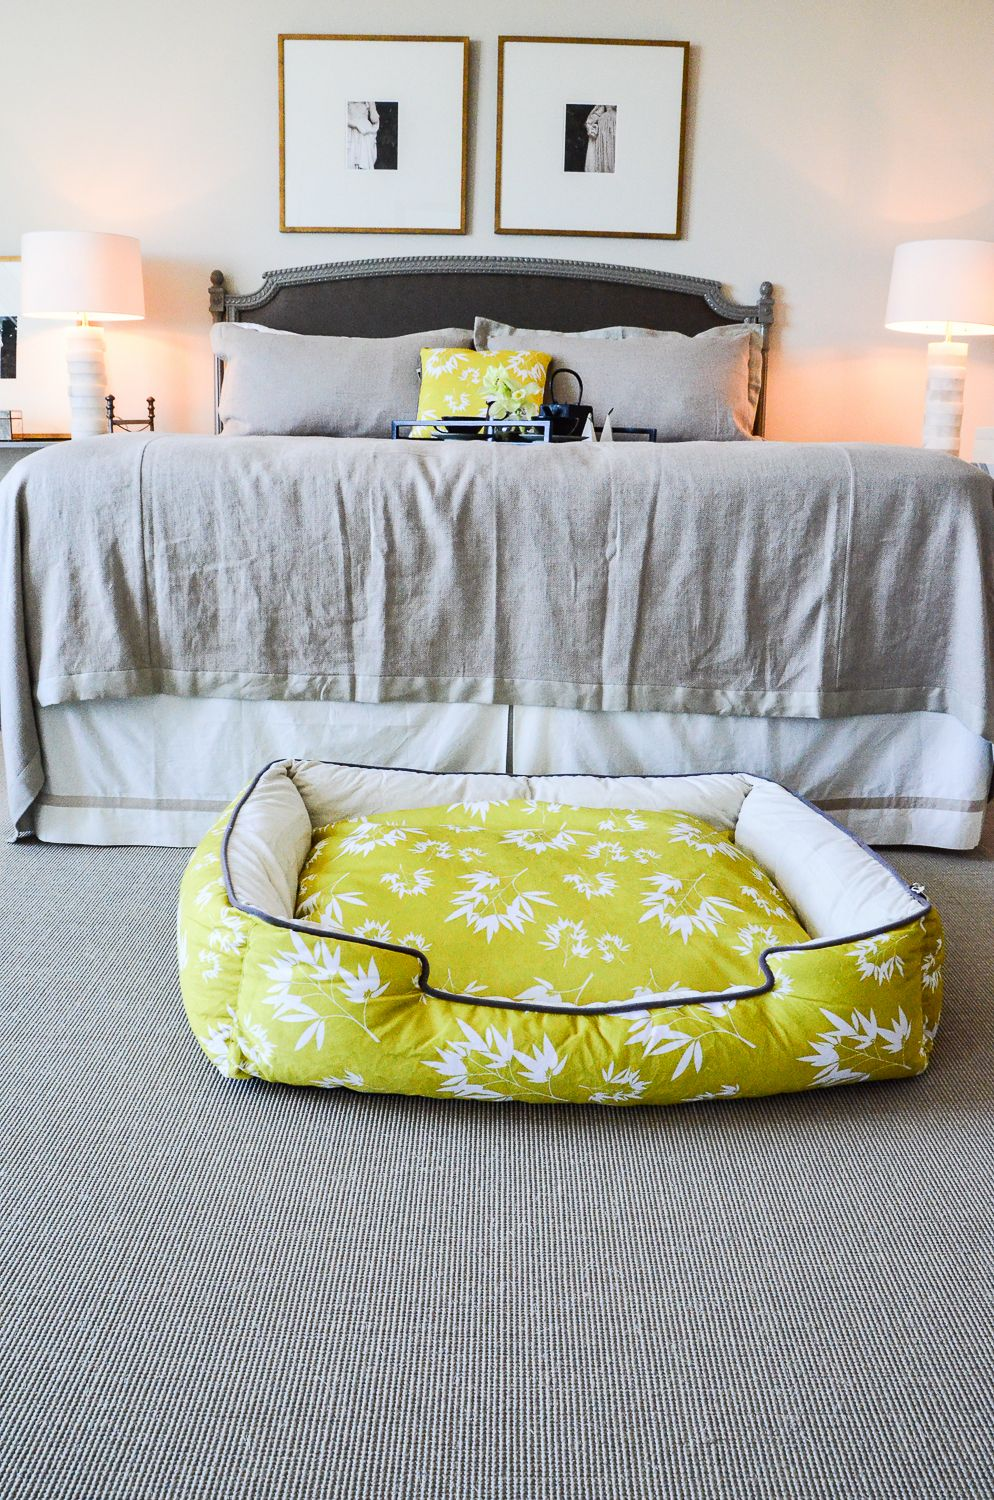 sd blog   shades of dog matching modern dog beds and throw  - sd blog   shades of dog matching modern dog beds and throw pillows love